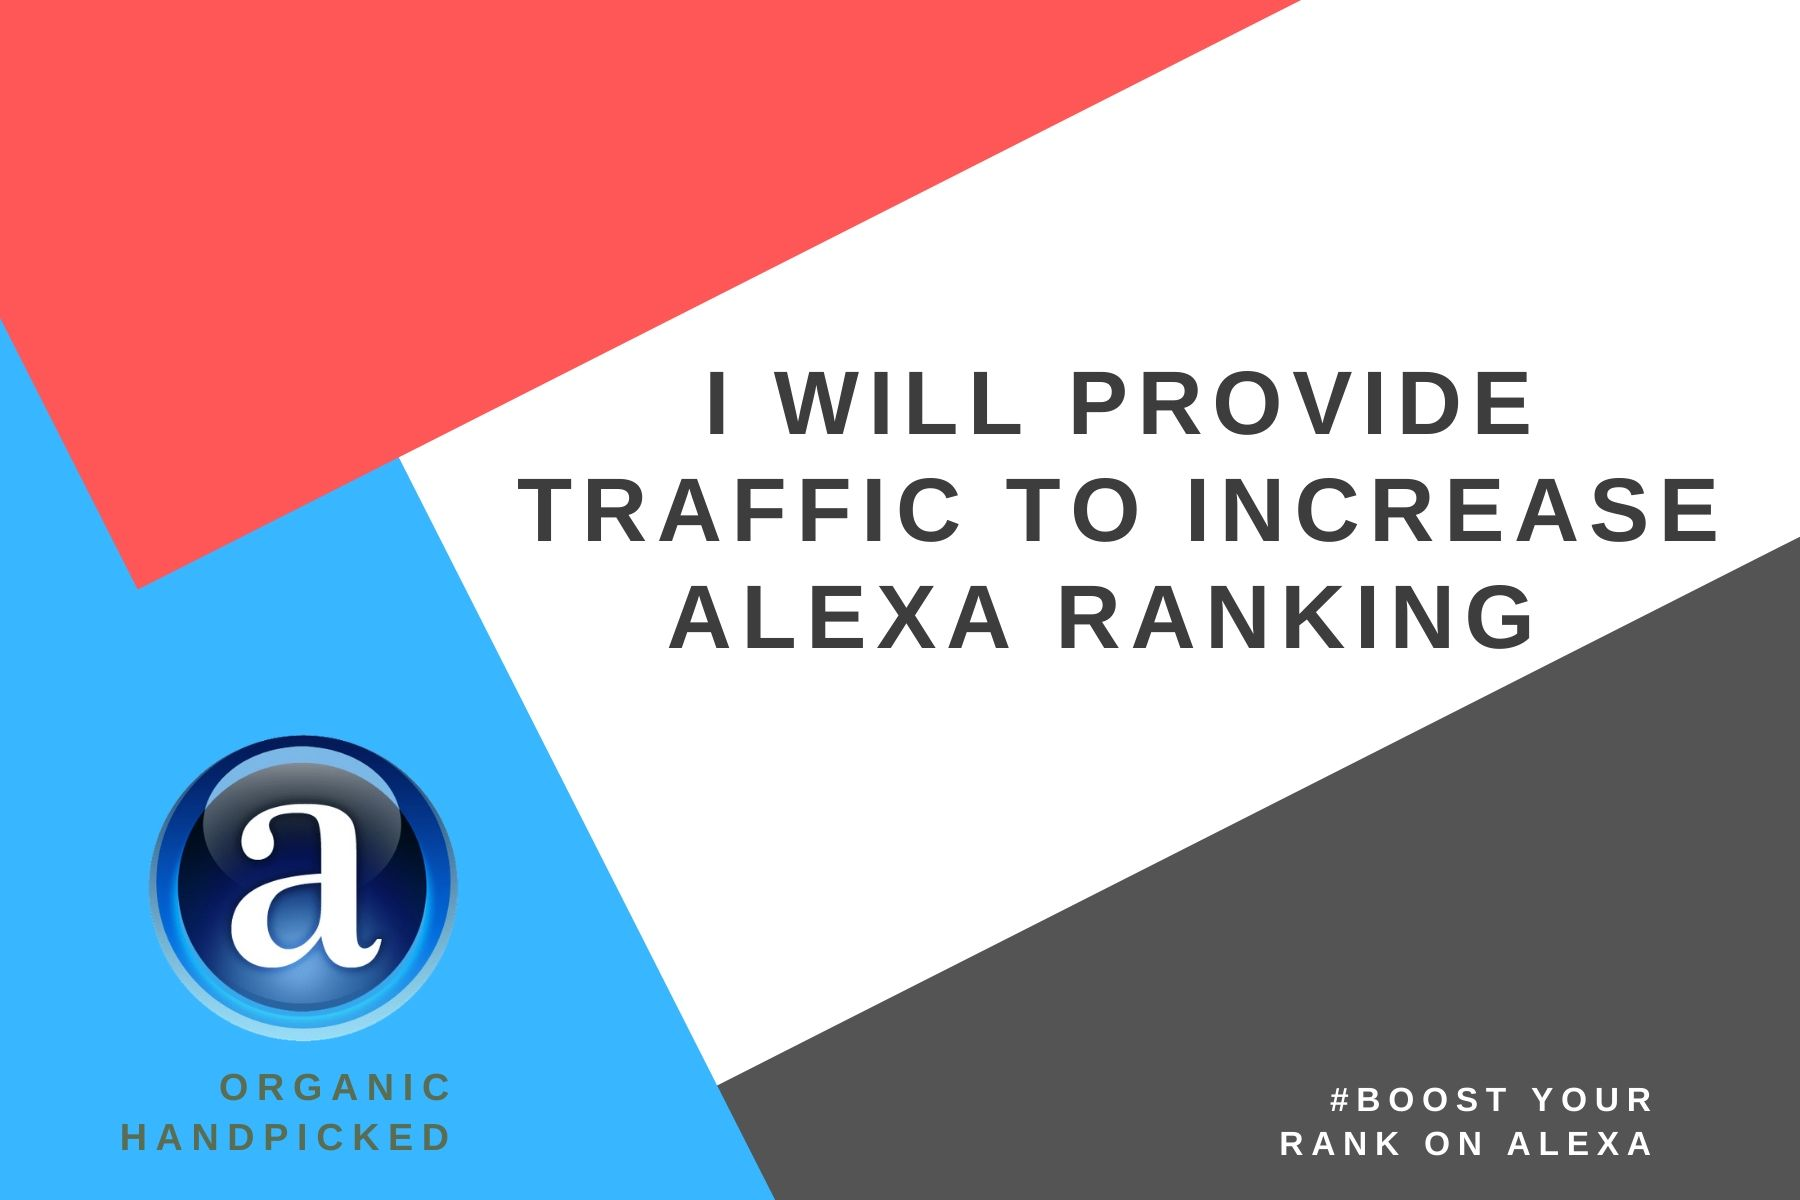 I will provide traffic to increase Alexa ranking